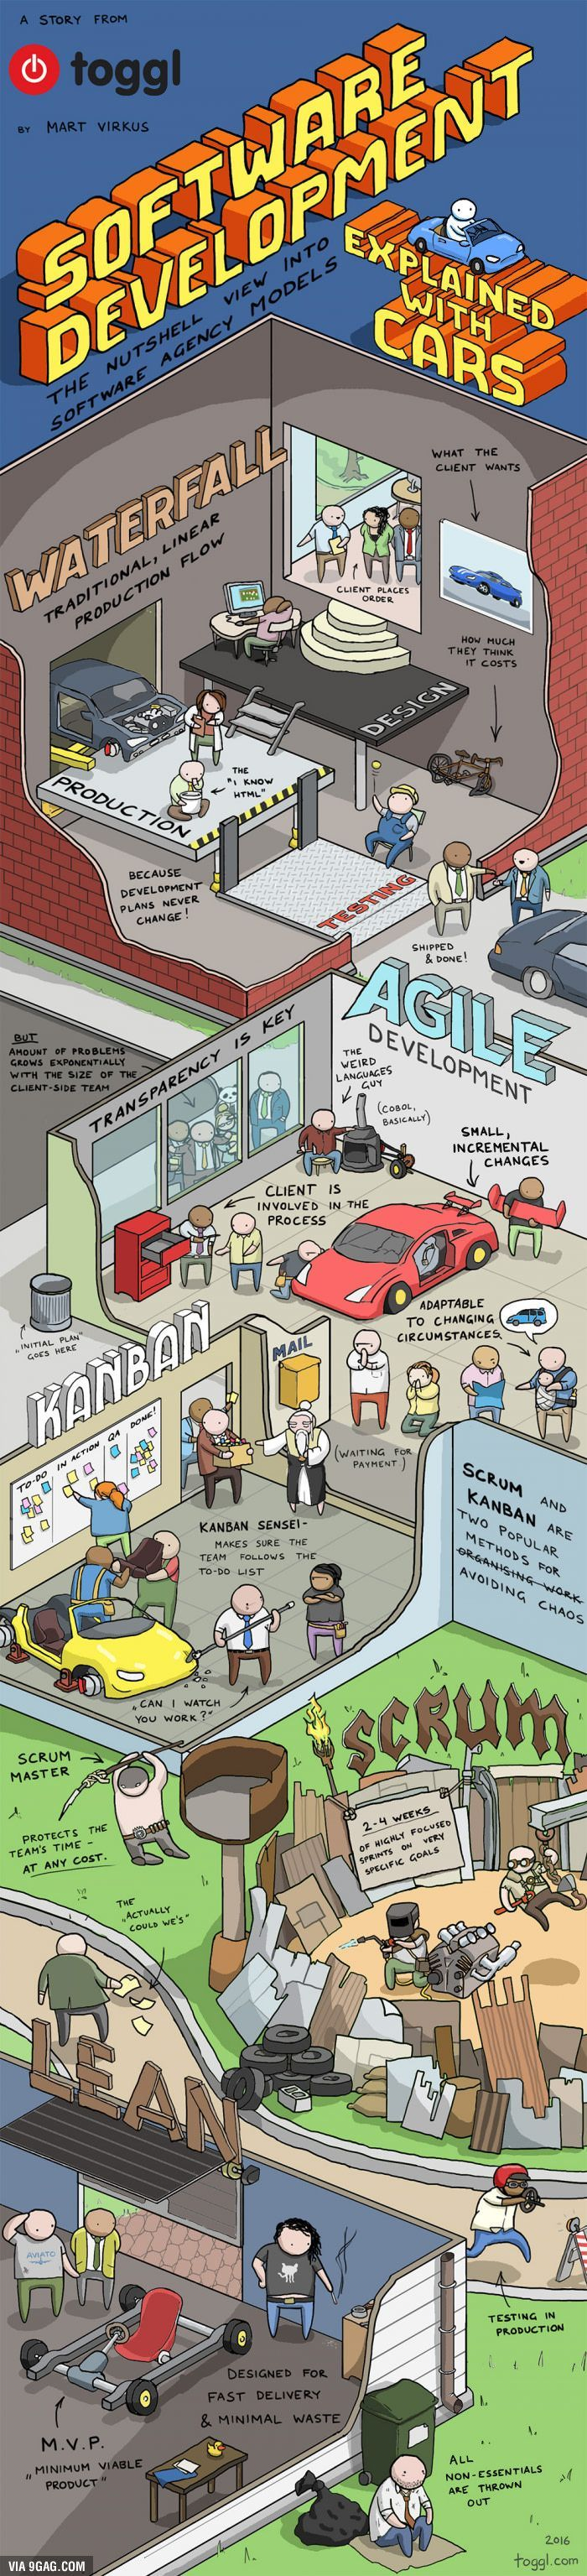 Design t shirt software online - Software Development Explained With Cars Check Out That Cool T Shirt Here Https